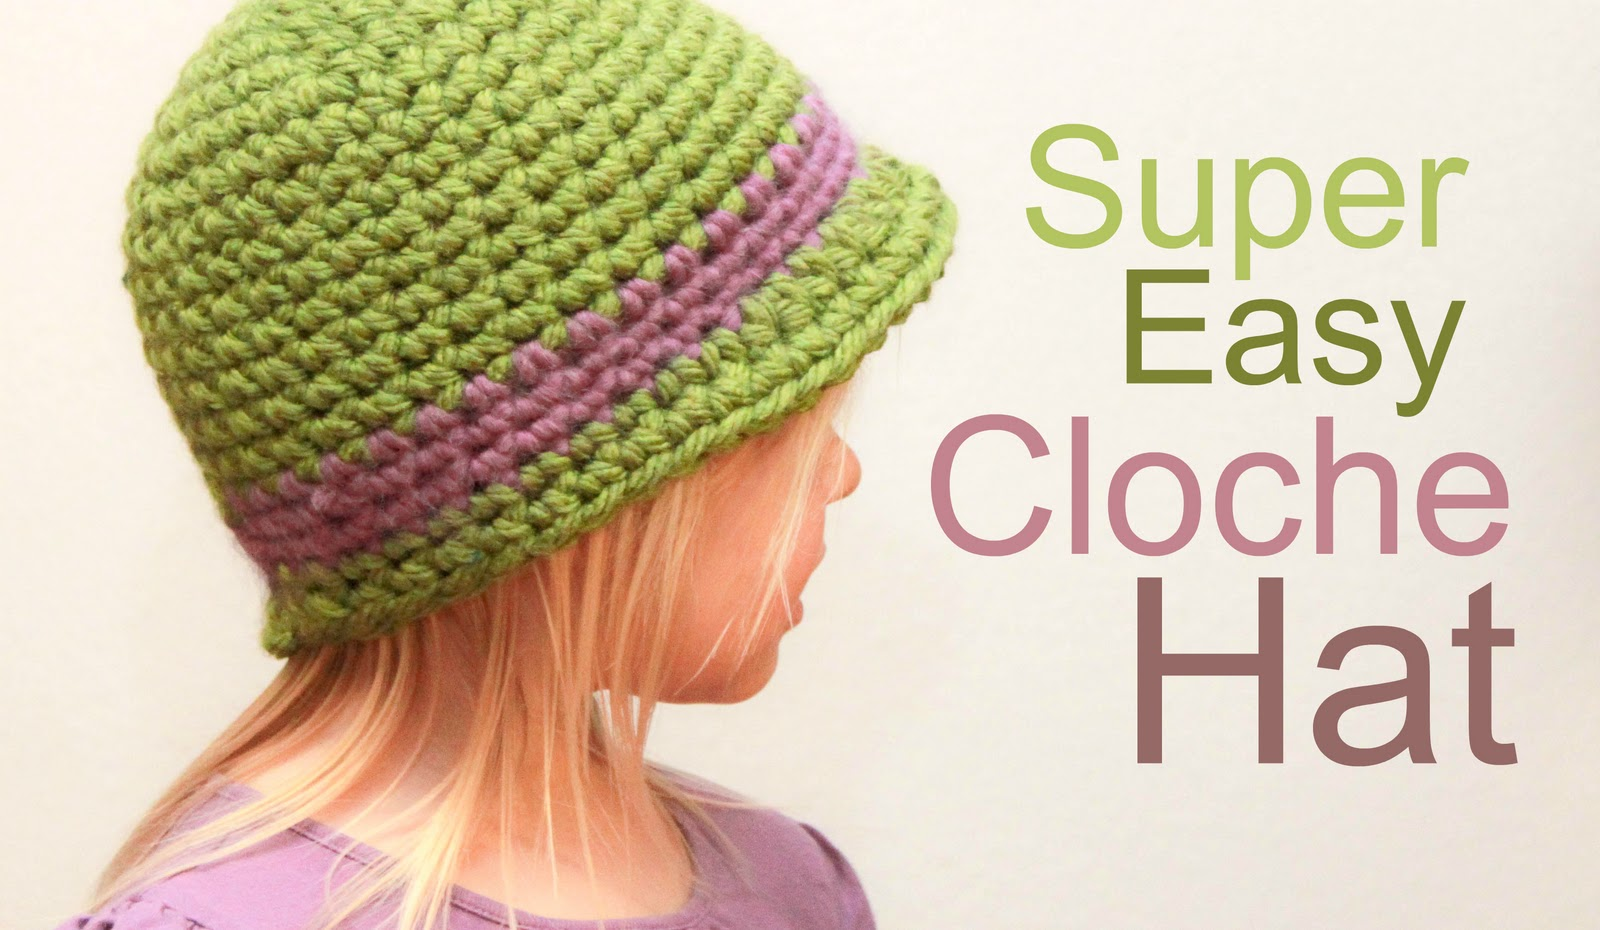 Crochet For Free: Super Easy Cloche Hat with Brim (Size Baby to Adult)